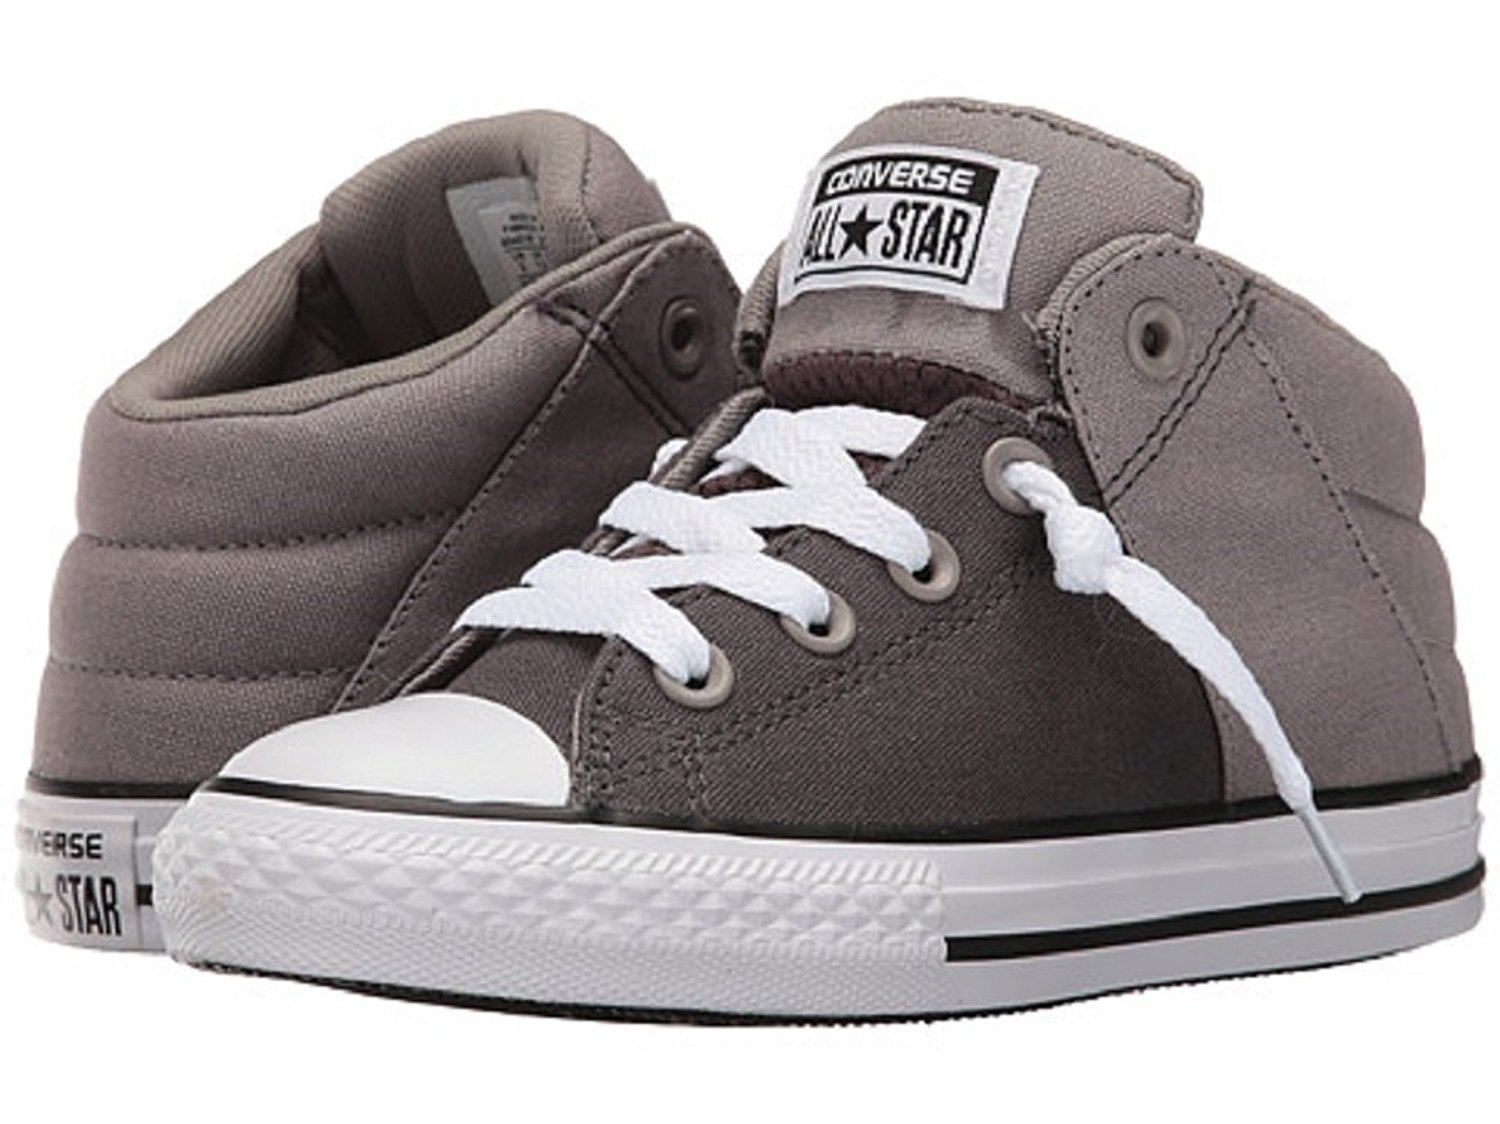 33197c022b99 Get Quotations · Converse Chuck Taylor All Star Axel - Kids-11.5